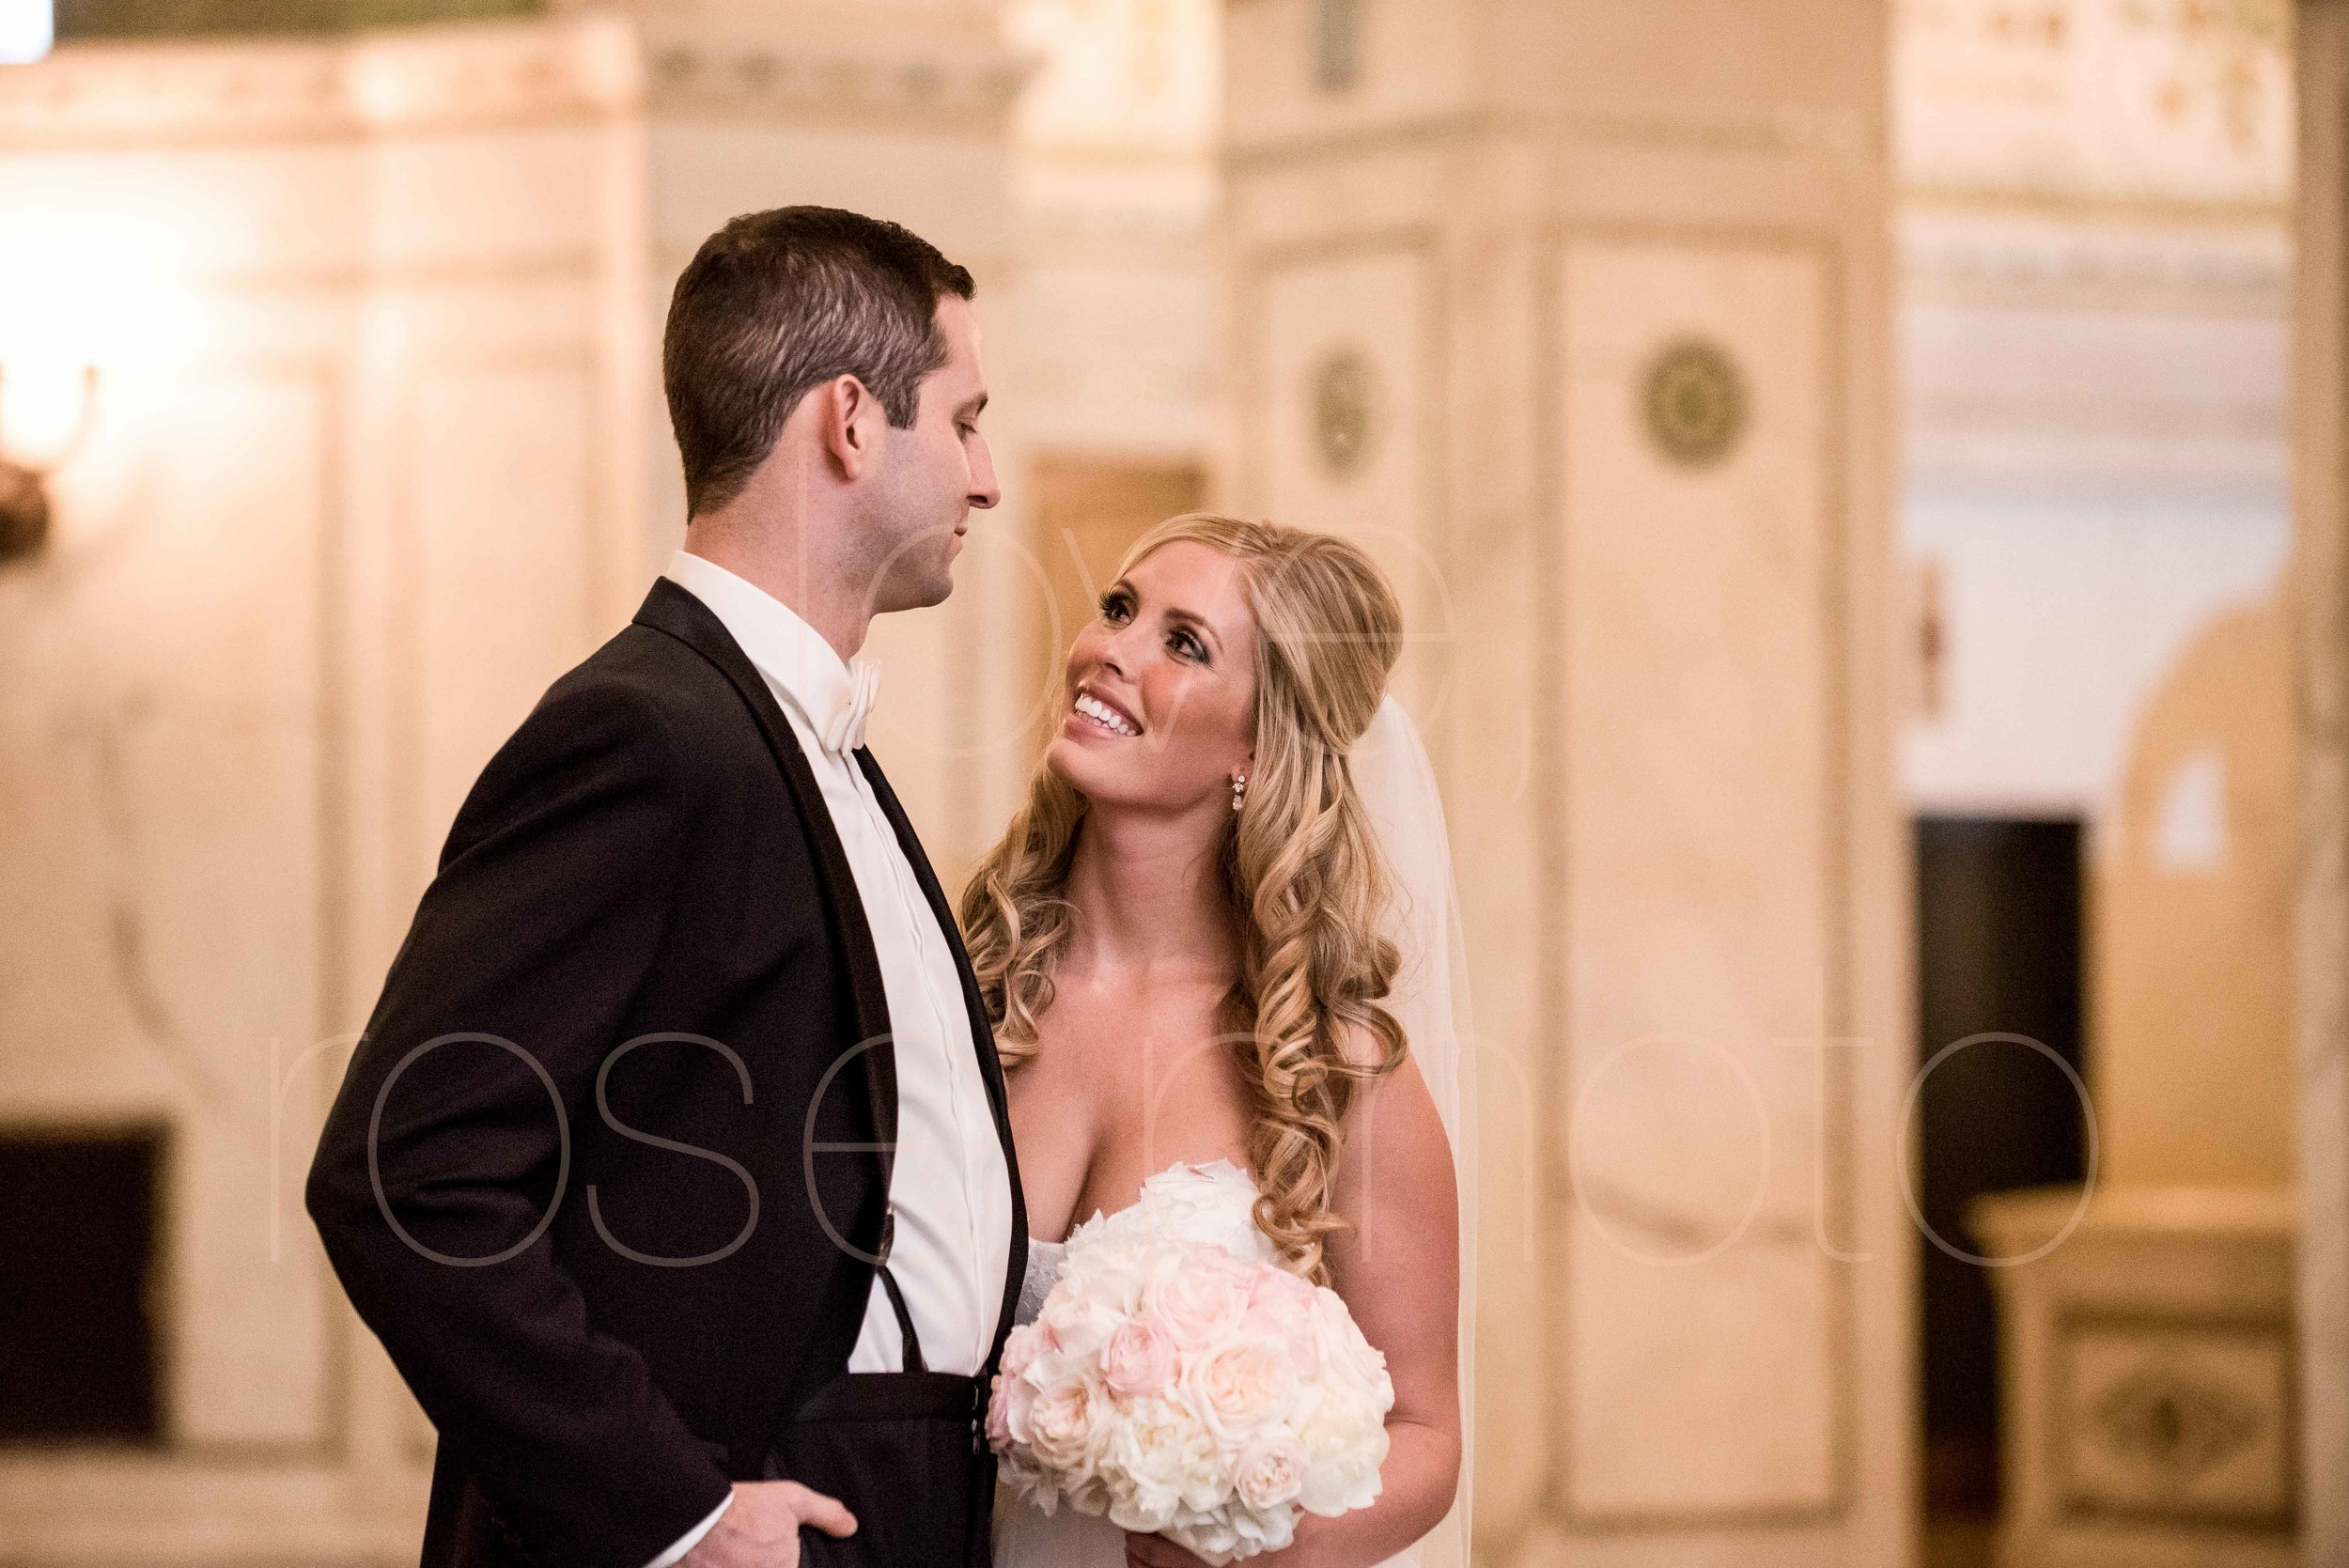 Rose Photo downtown Chicago wedding mag mile new years eve best wedding photography-25.jpg